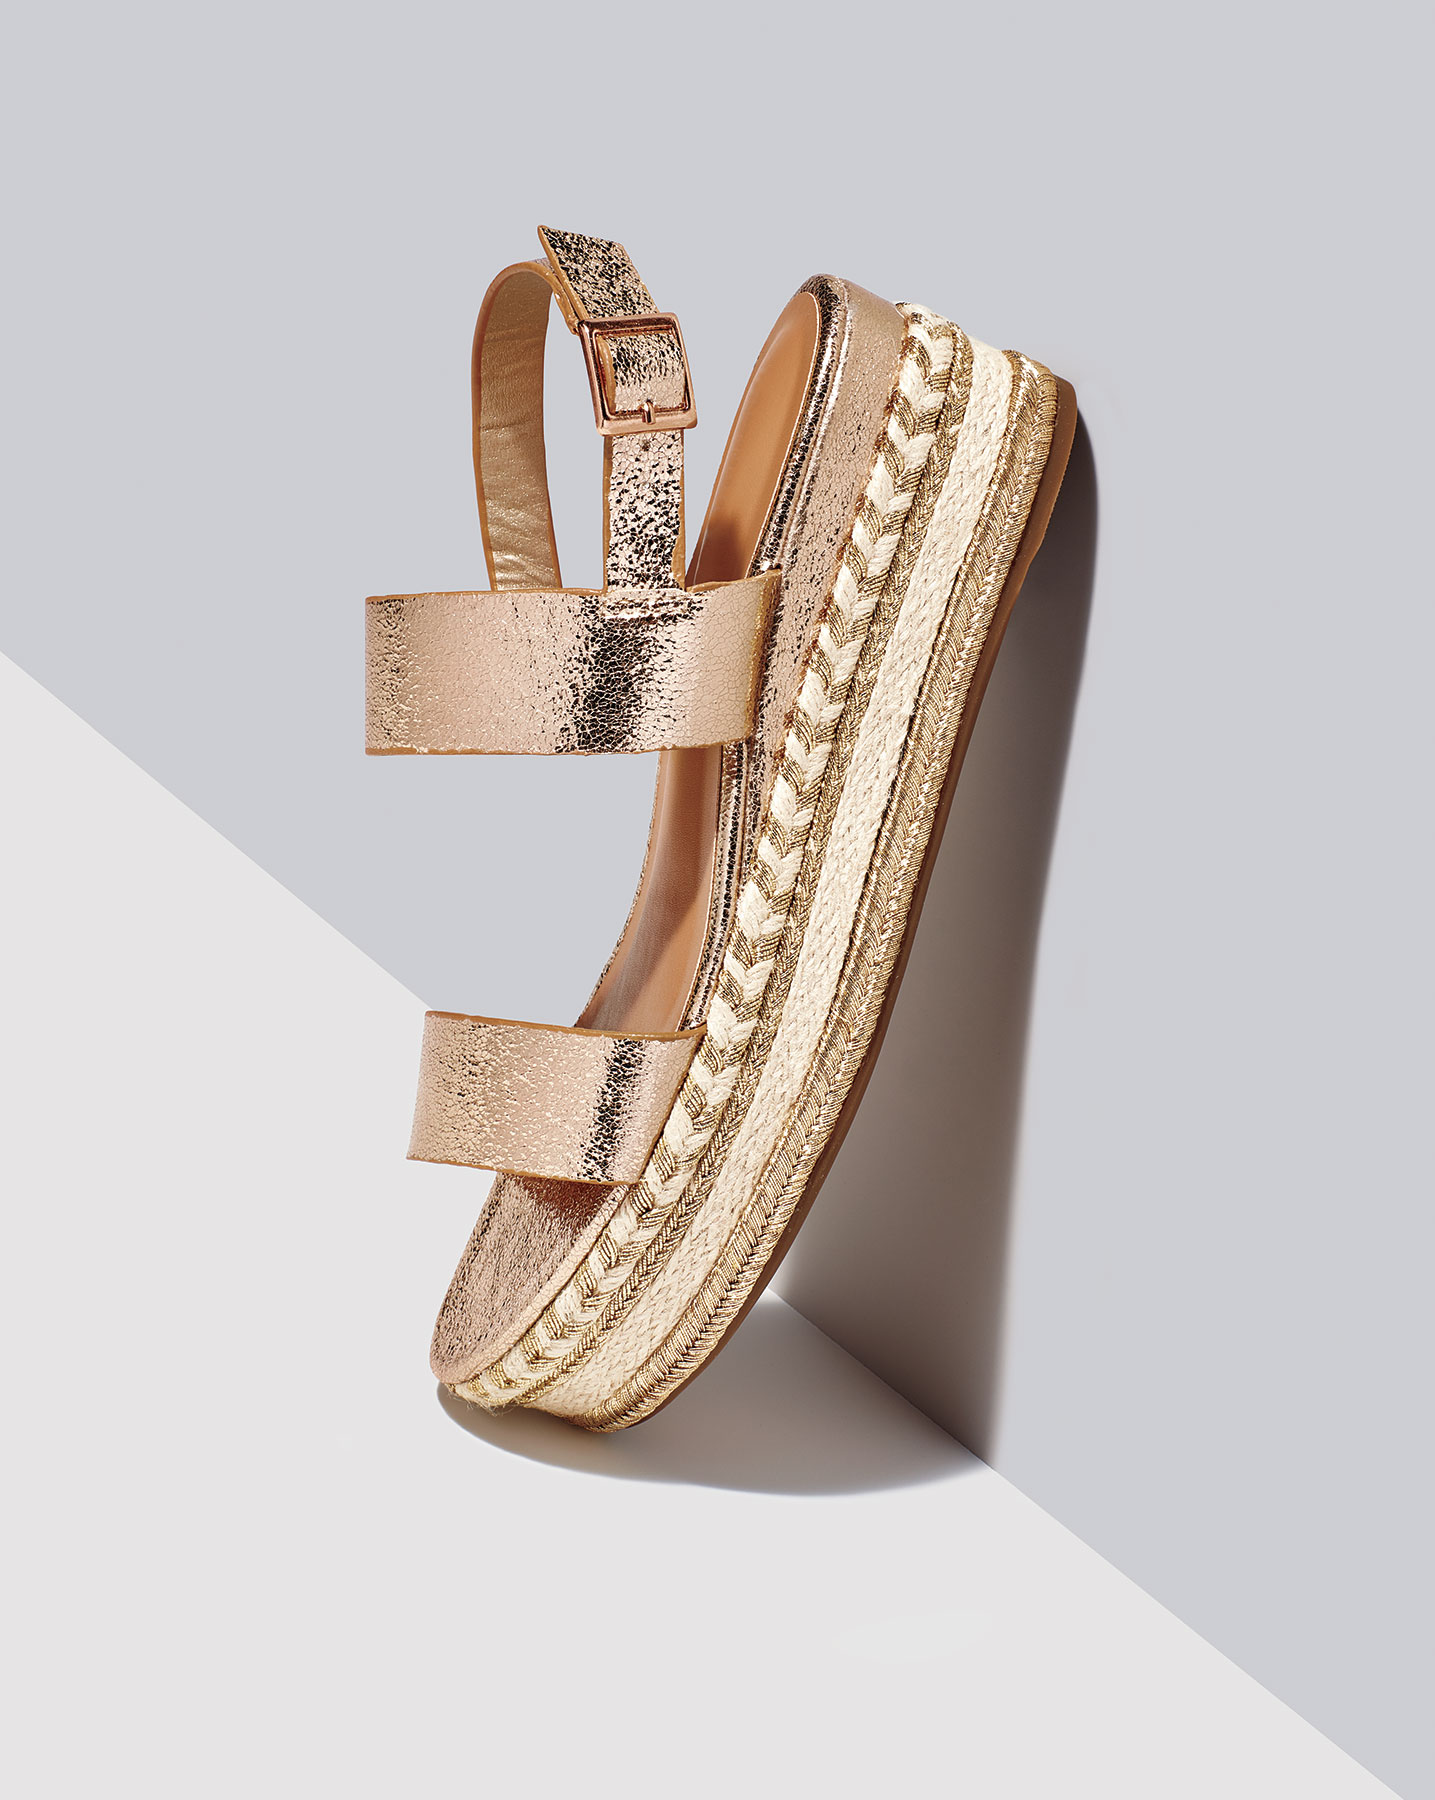 49b6ba9d17a5 Our Favorite Summer Sandals and Shoes Are About to Be Your Favorites Too